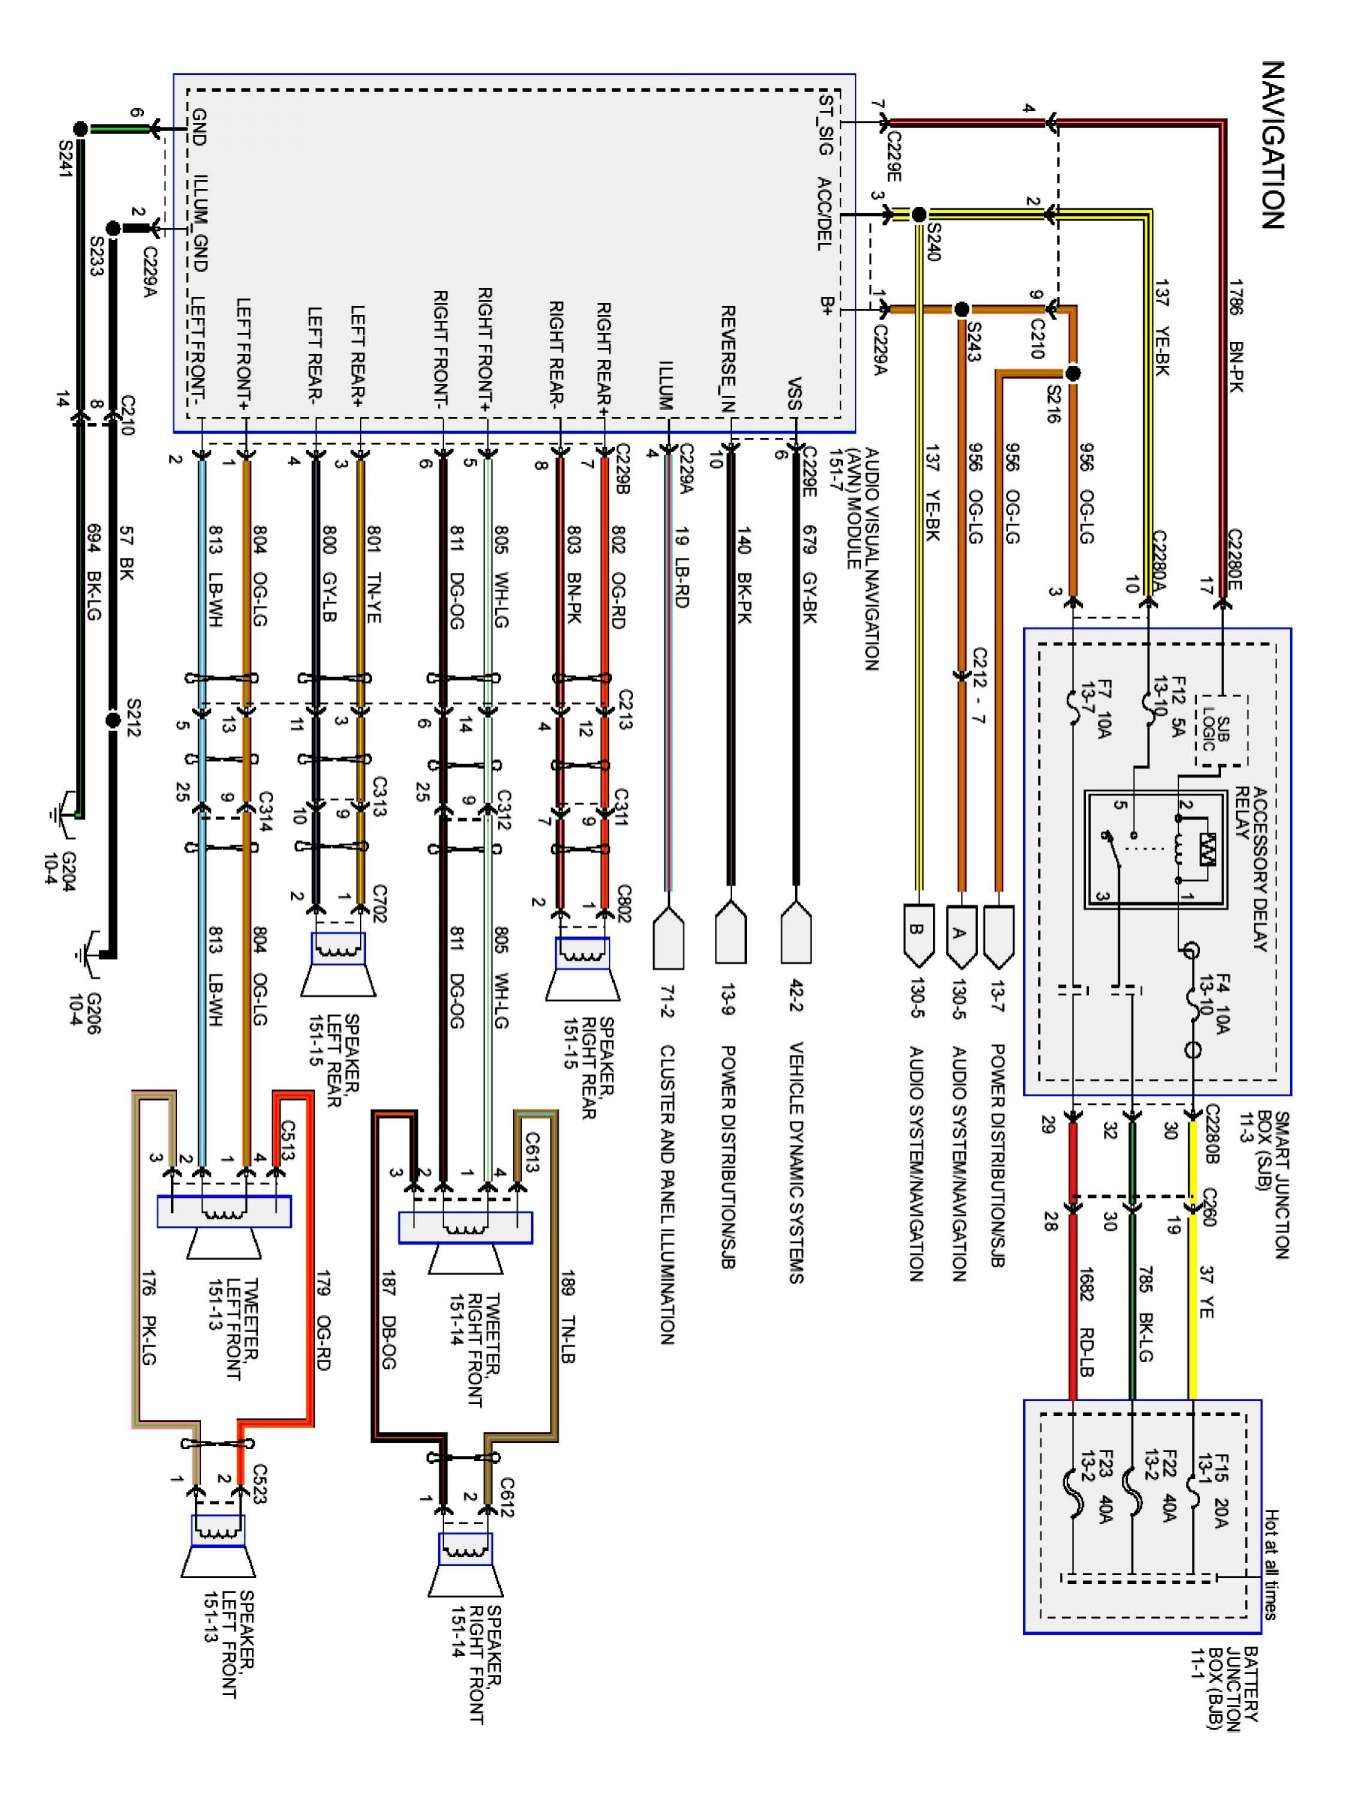 2012 Focus Radio Wiring Code - Mgb Engine Wiring for Wiring Diagram  SchematicsWiring Diagram Schematics